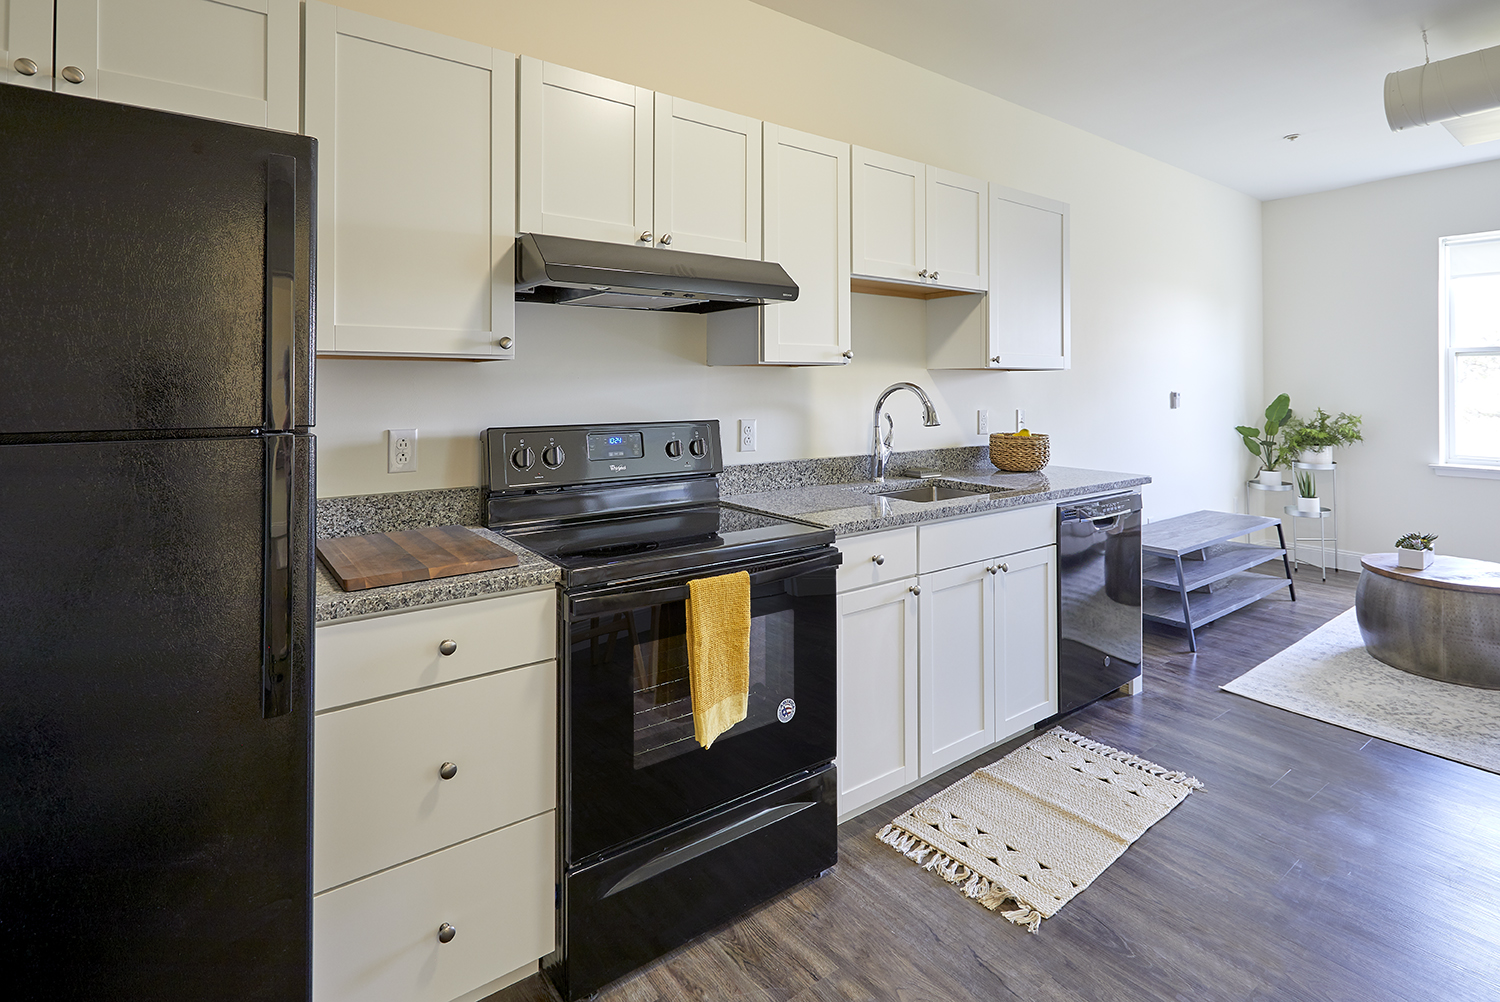 132 Marginal Way – The Linden – Apartment 315  **Beautiful Modern Remodel with City Views!**